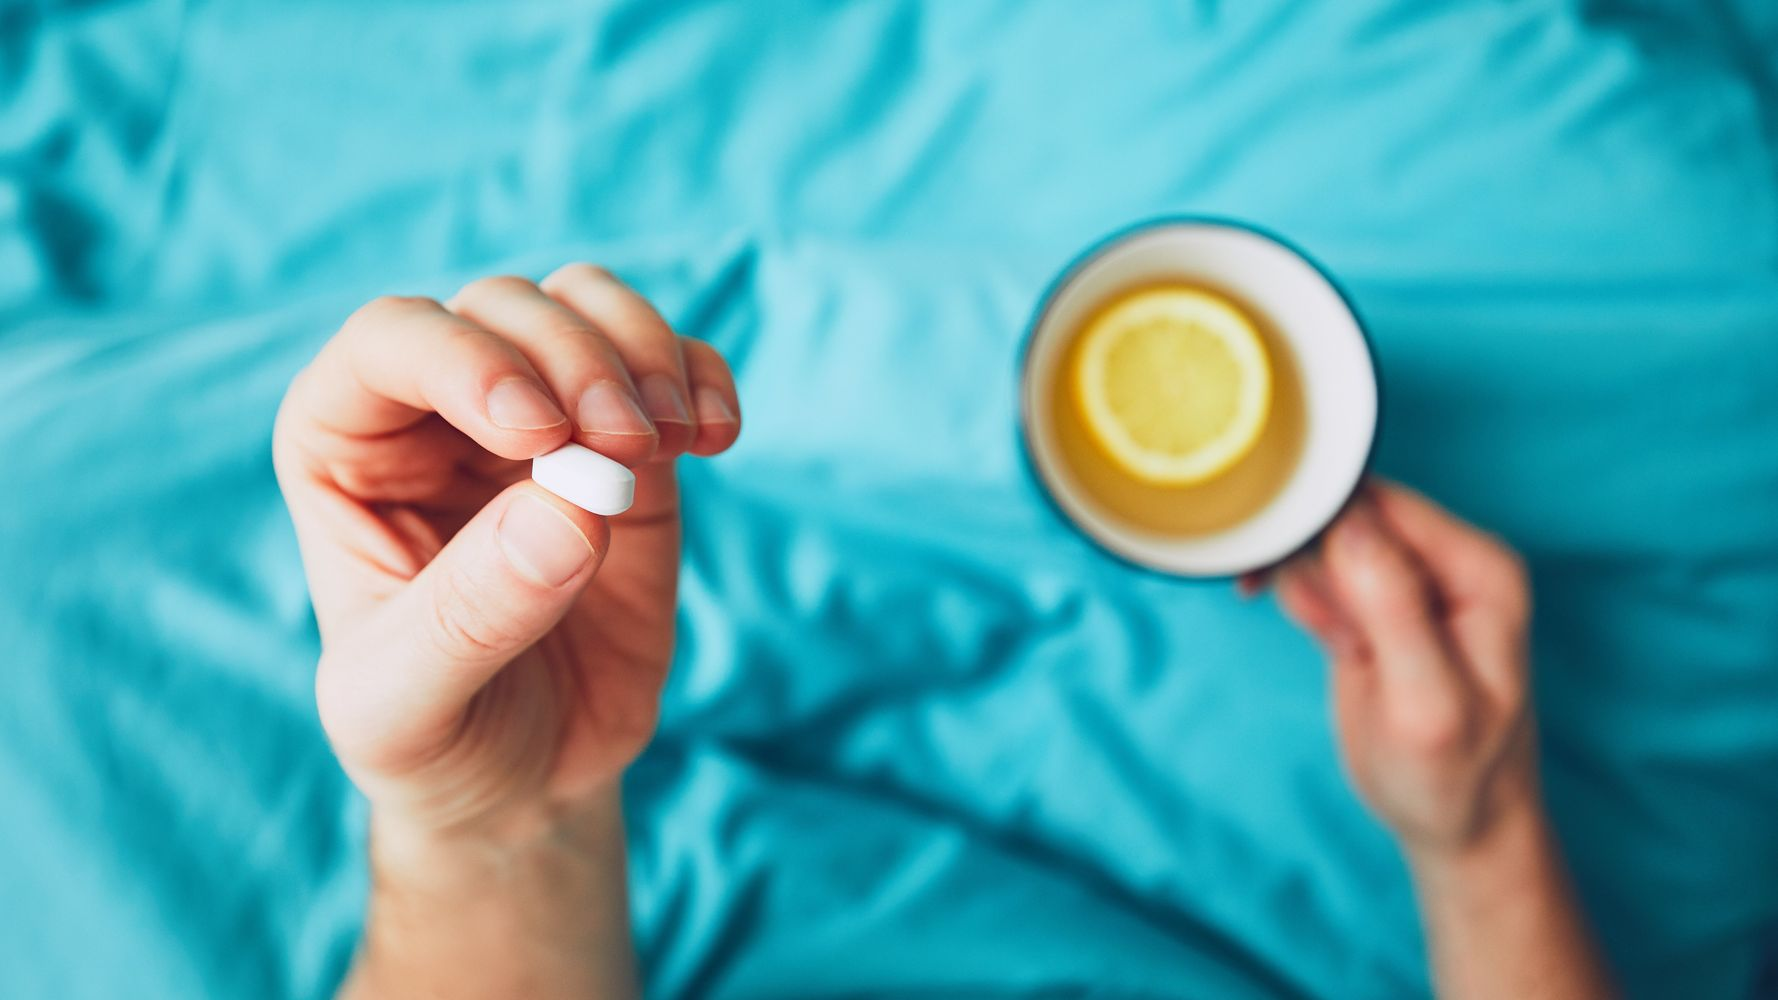 Should You Take A Vitamin Every Day?